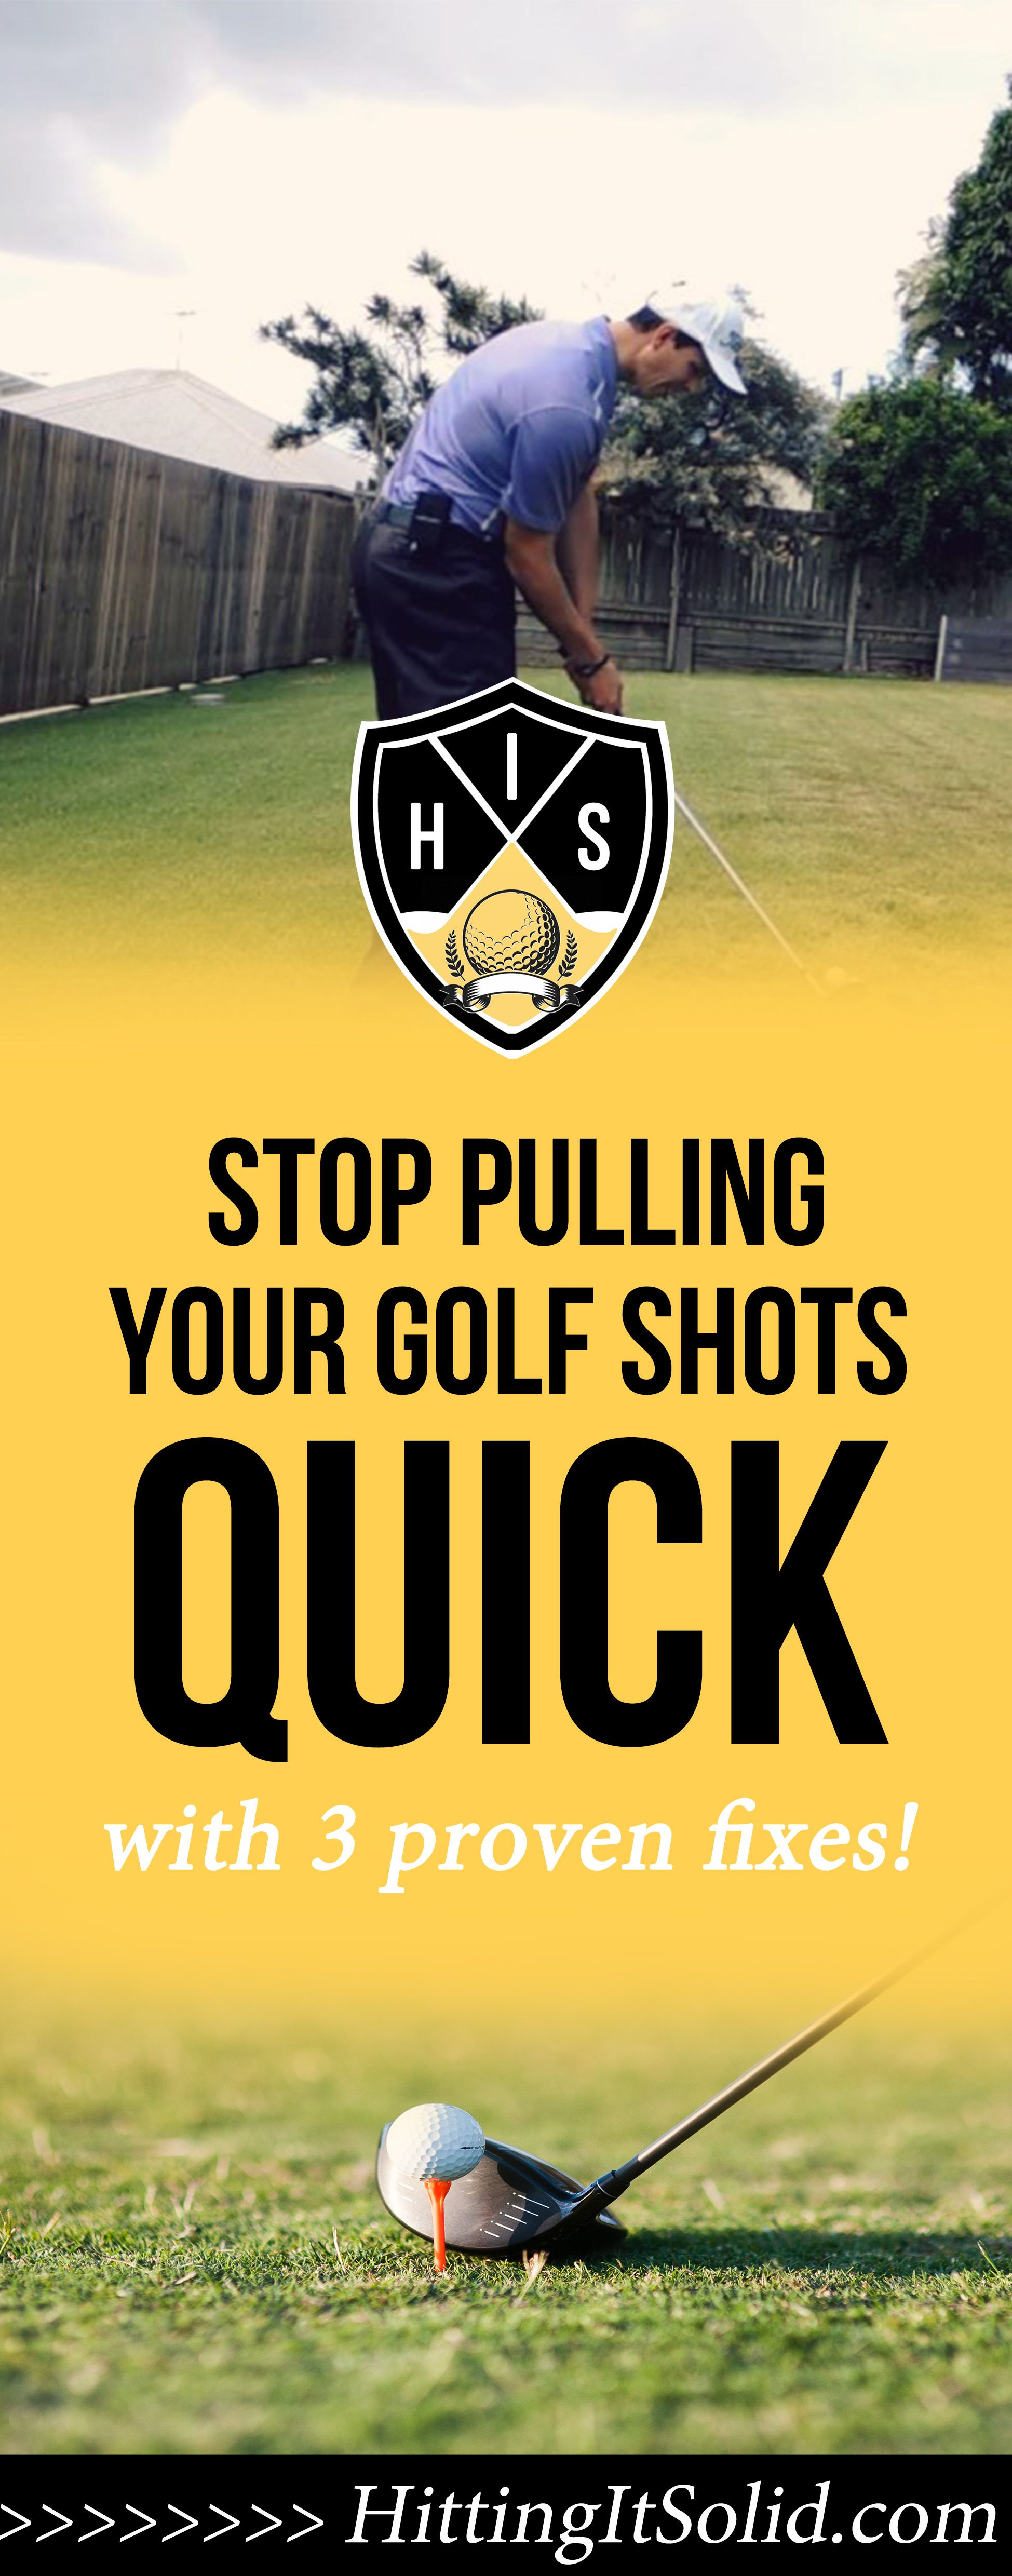 If you want to know how to stop pulling golf shots fast you need to know what the causes are and how you can fix them. These 3 simple methods will fix your pulled golf shots so you can hit straighter shots and shoot lower scores.